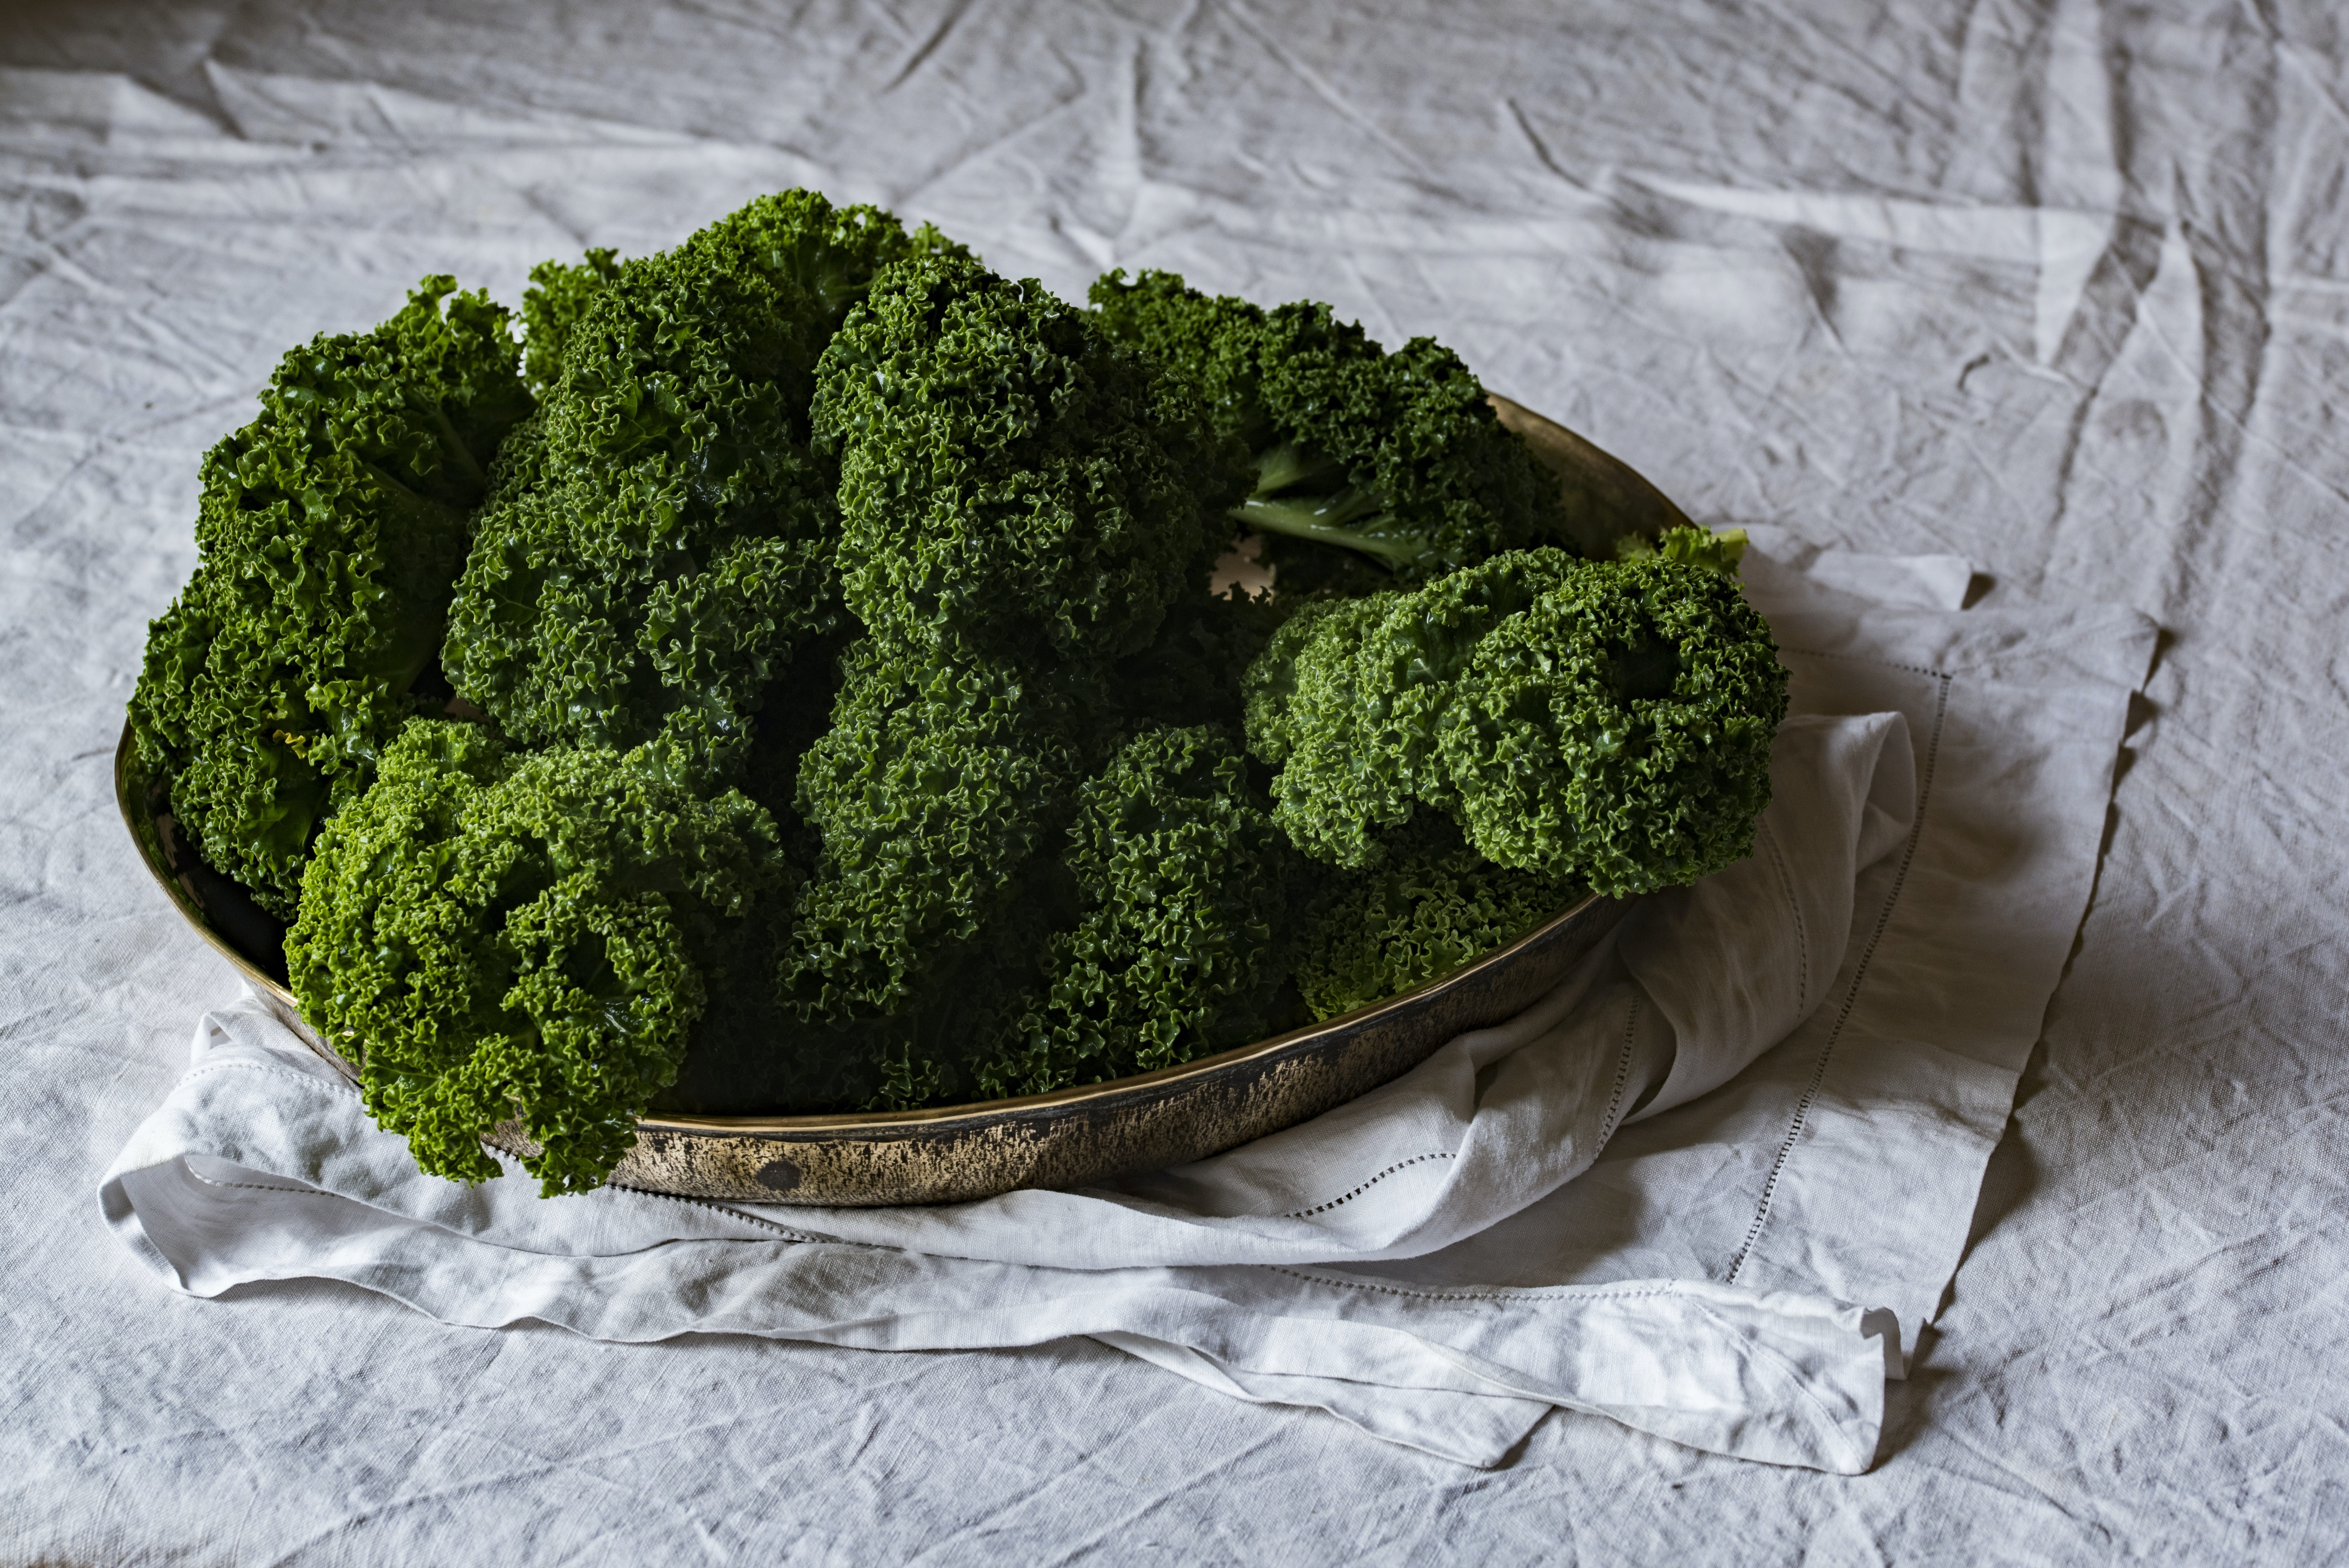 Green kale on a platter on a white tablecloth